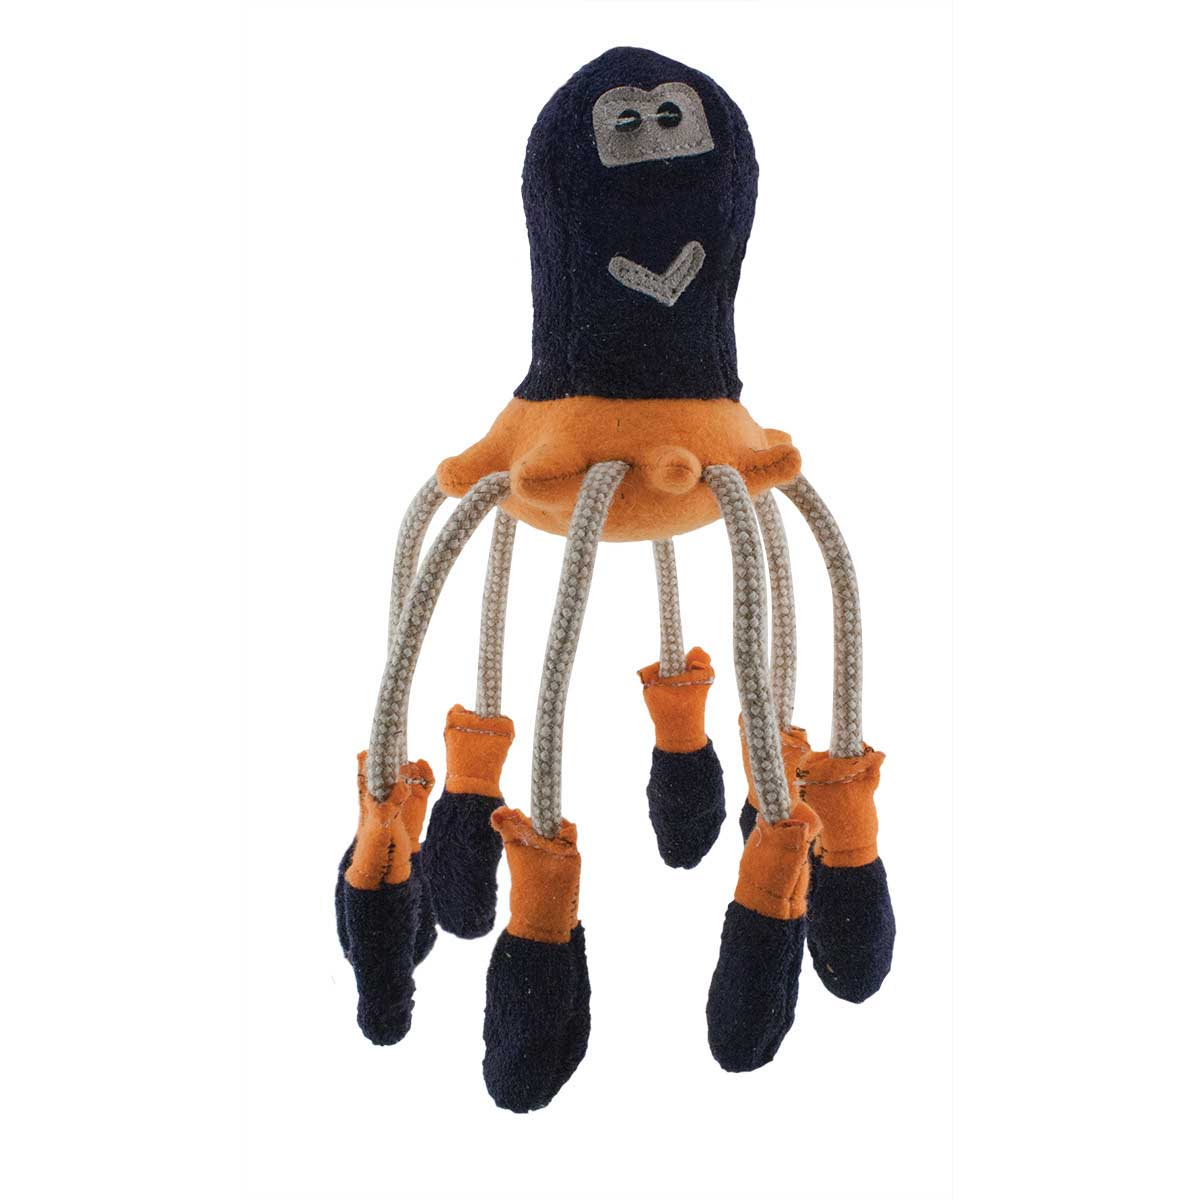 Dawgeee Toy Natural Fleece Octopus With Crinkle Feet 11 inches